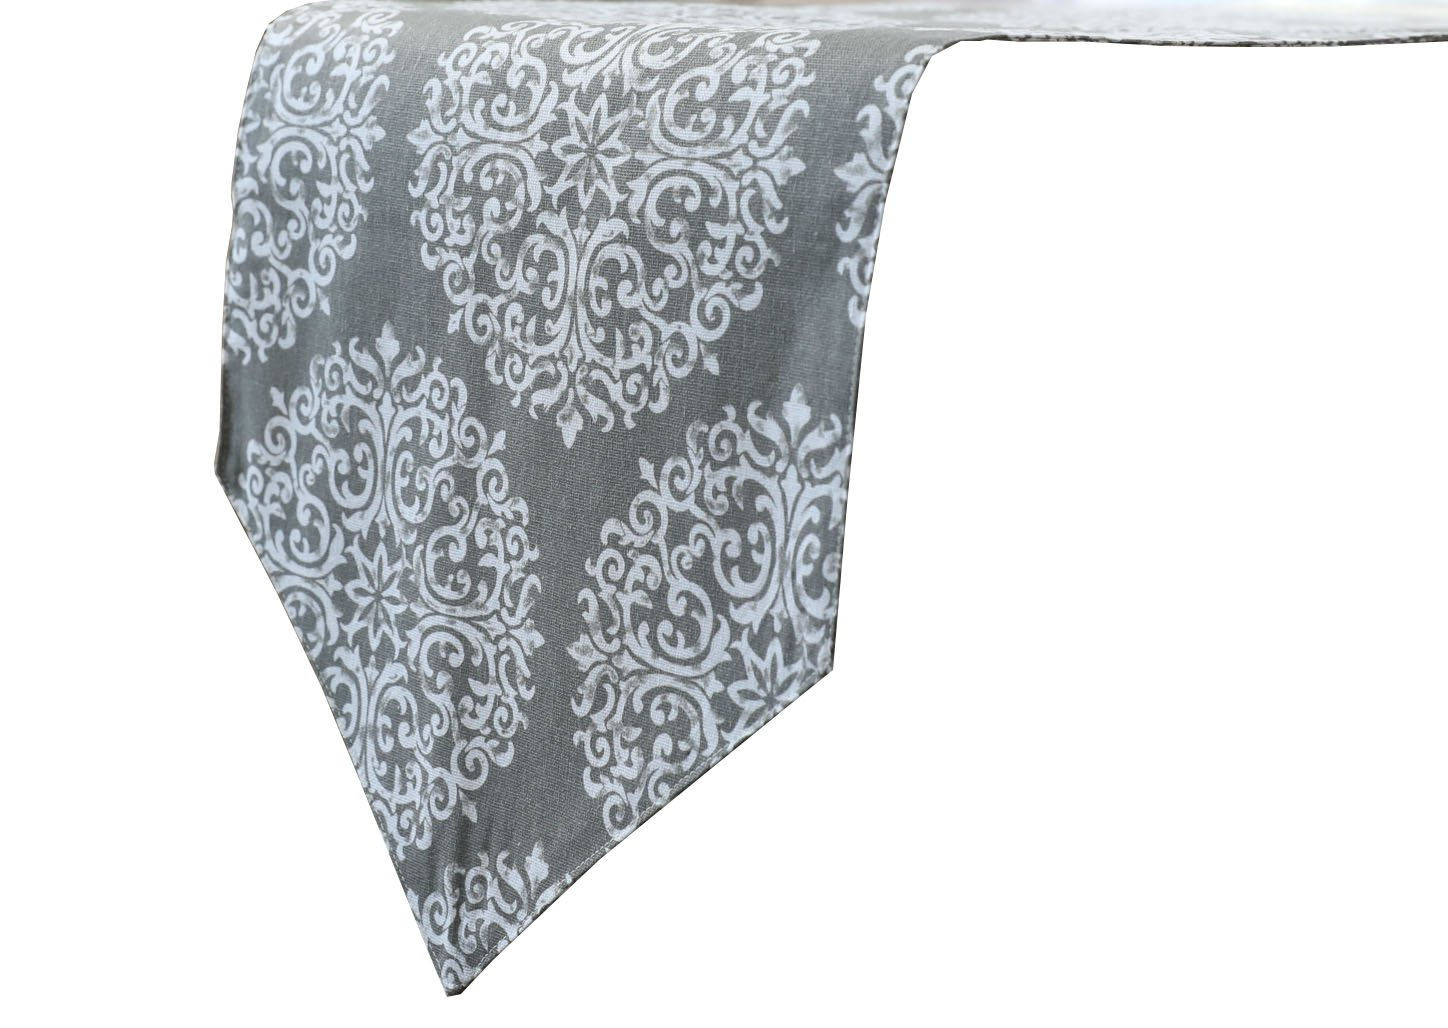 White Circle Flower Print Grey Table Runner Home Doily Linen Wedding Hotel Table Tv Cabinet Table Clothes Top Decoration